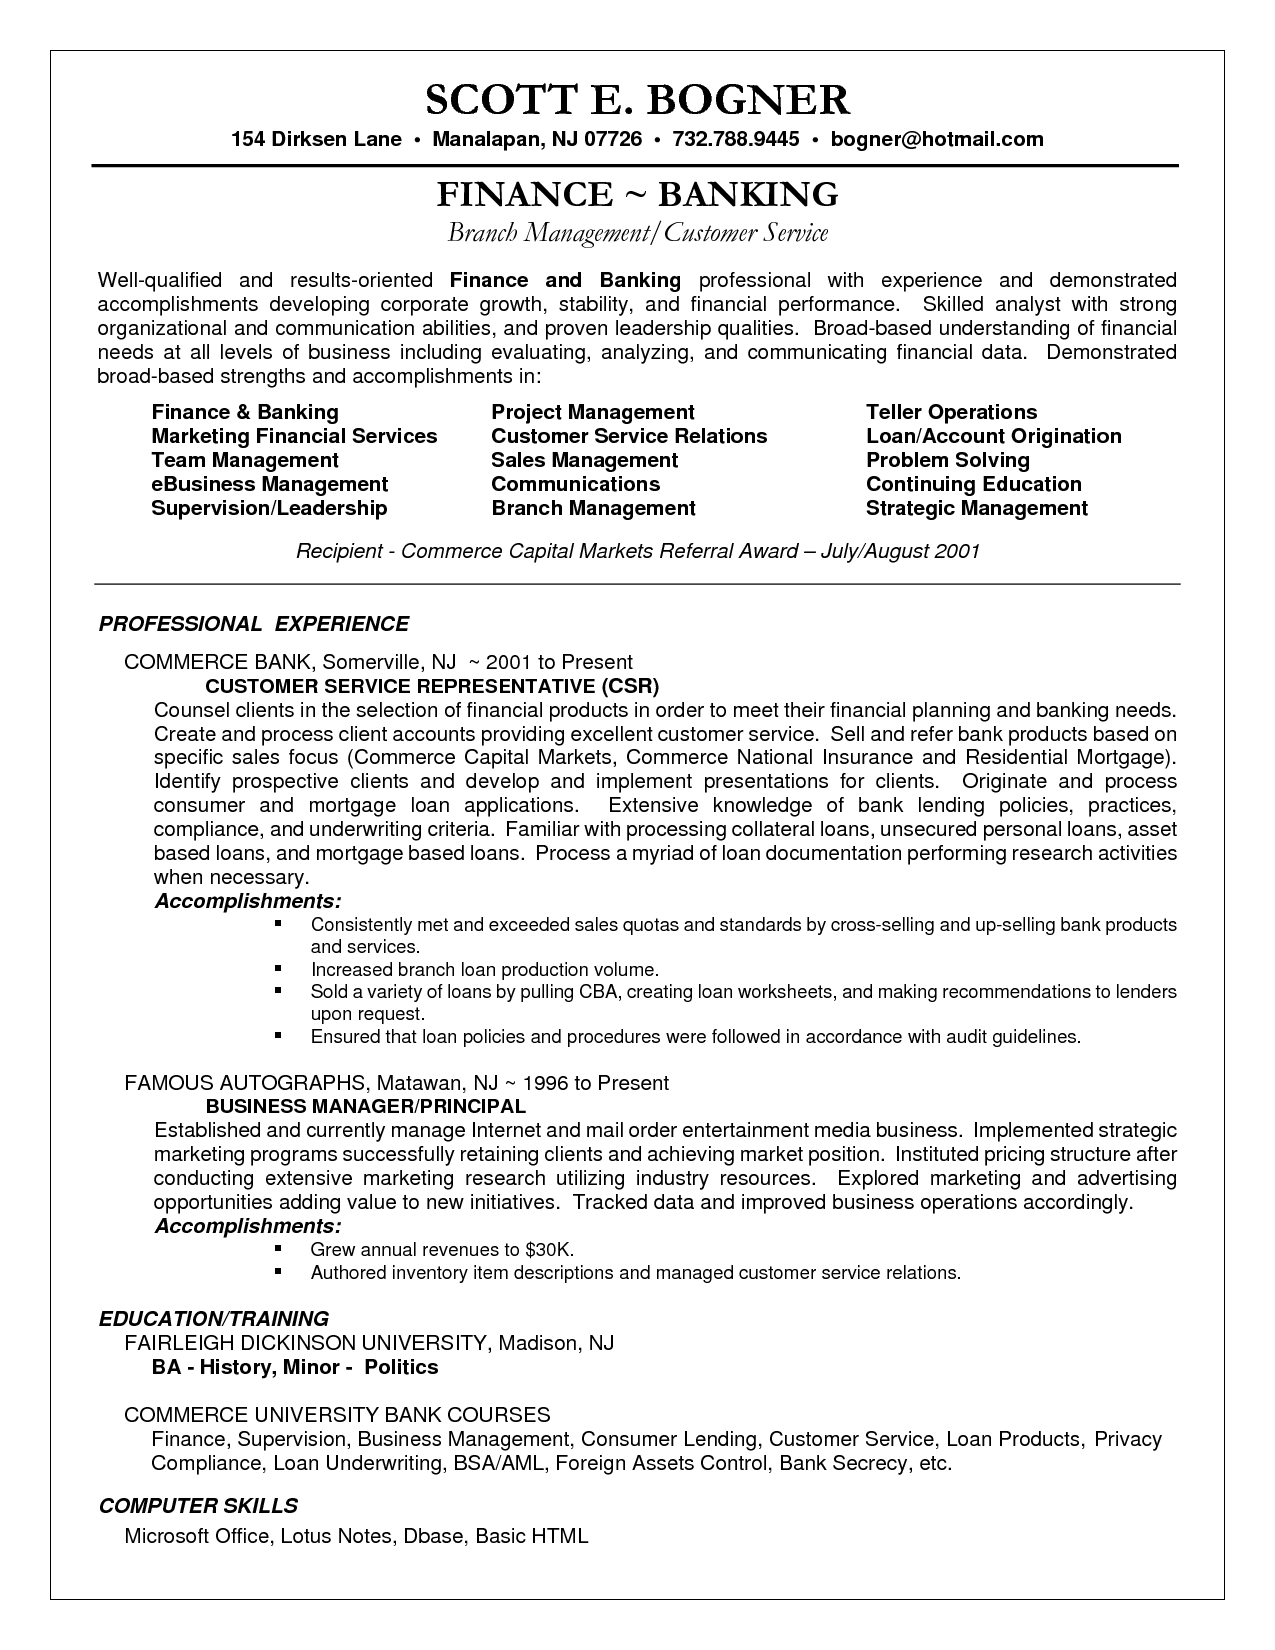 Customer Service Sales Resume Sample Resume For Entry Level Sales